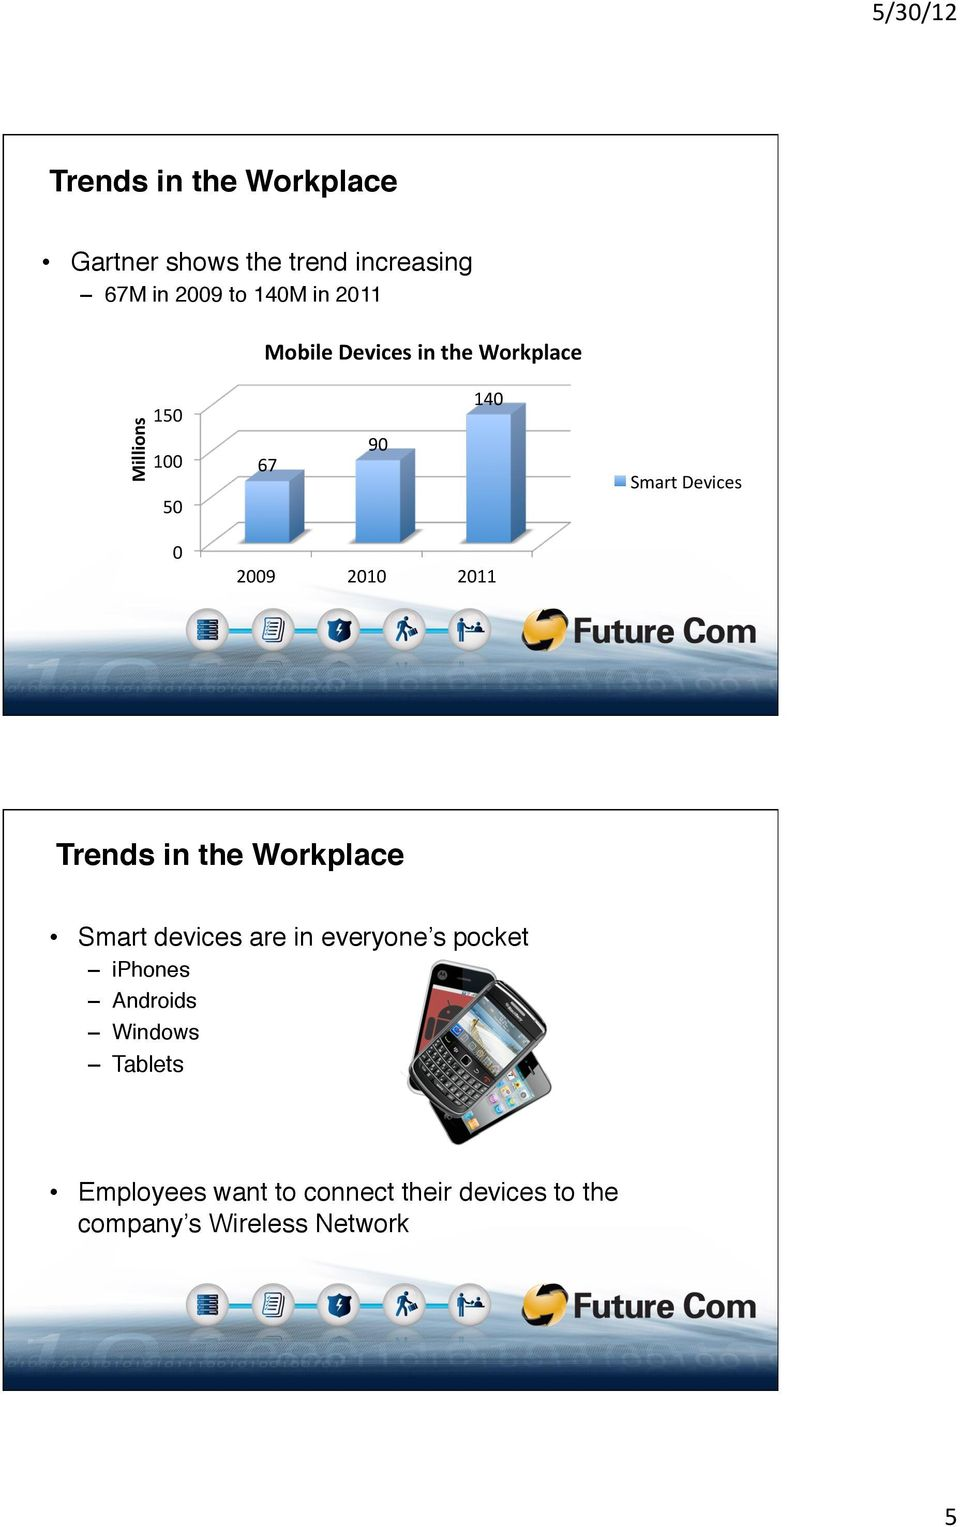 Workplace Millions 150 100 50 67 90 140 Smart Devices 0 2009 2010 2011  Smart devices are